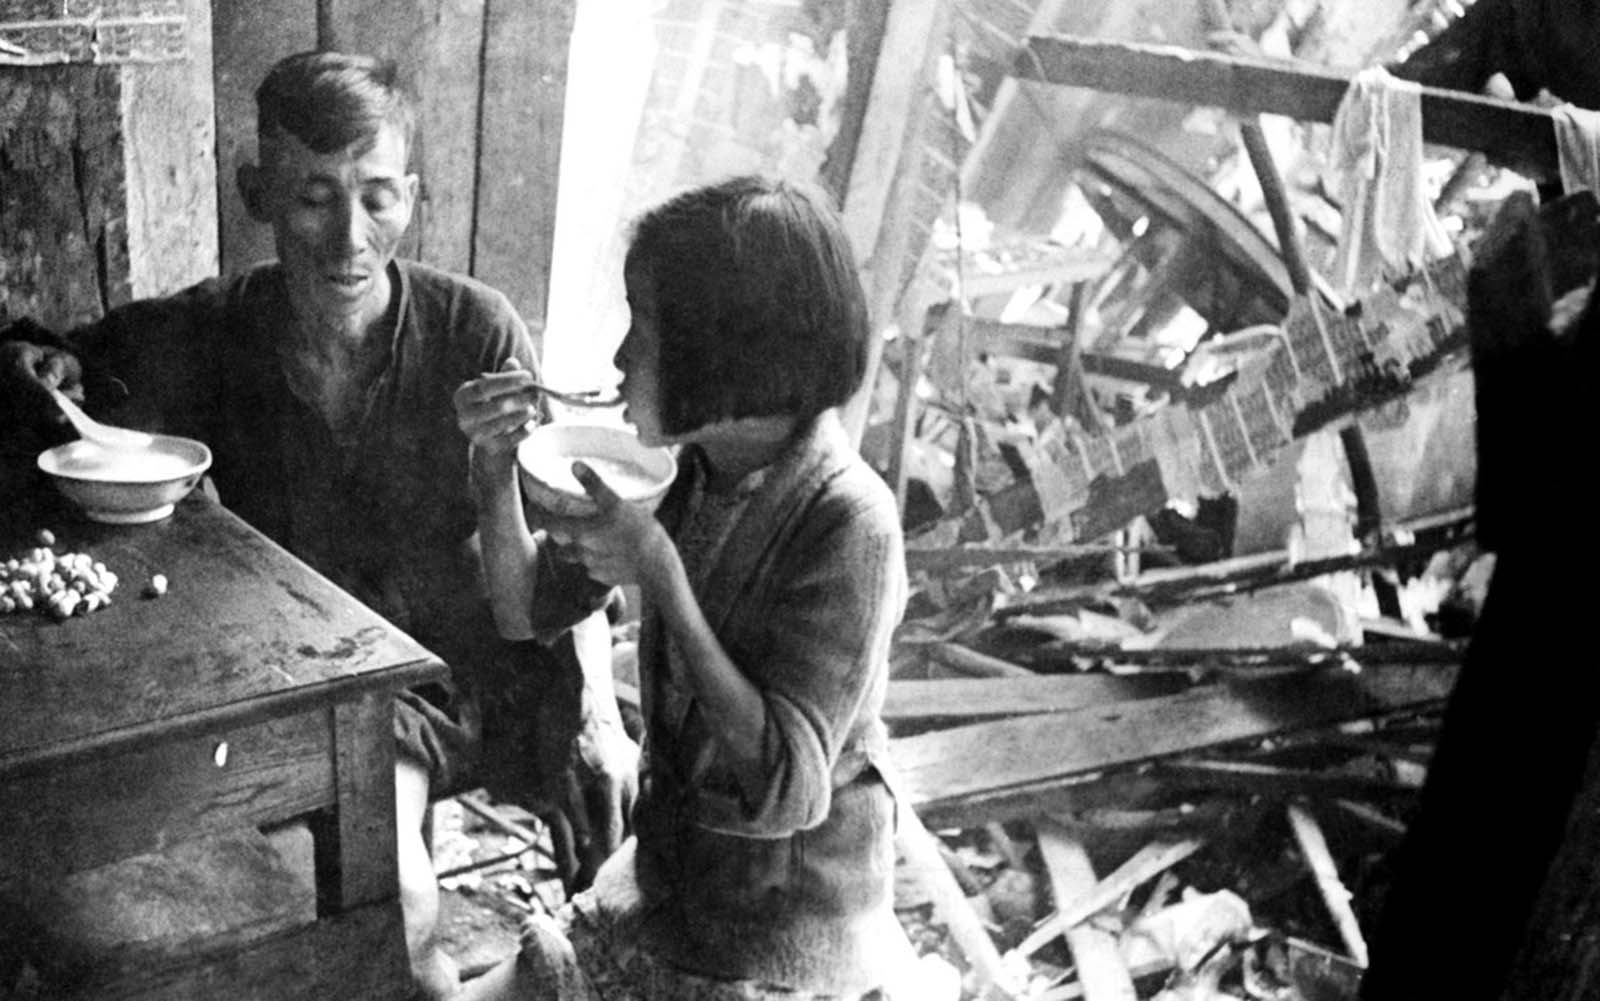 Dining together after a Japanese raid in the Singapore area, on February 26, 1942. A Chinese man and his young daughter sit calmly amid the ruins eating bowls of rice.